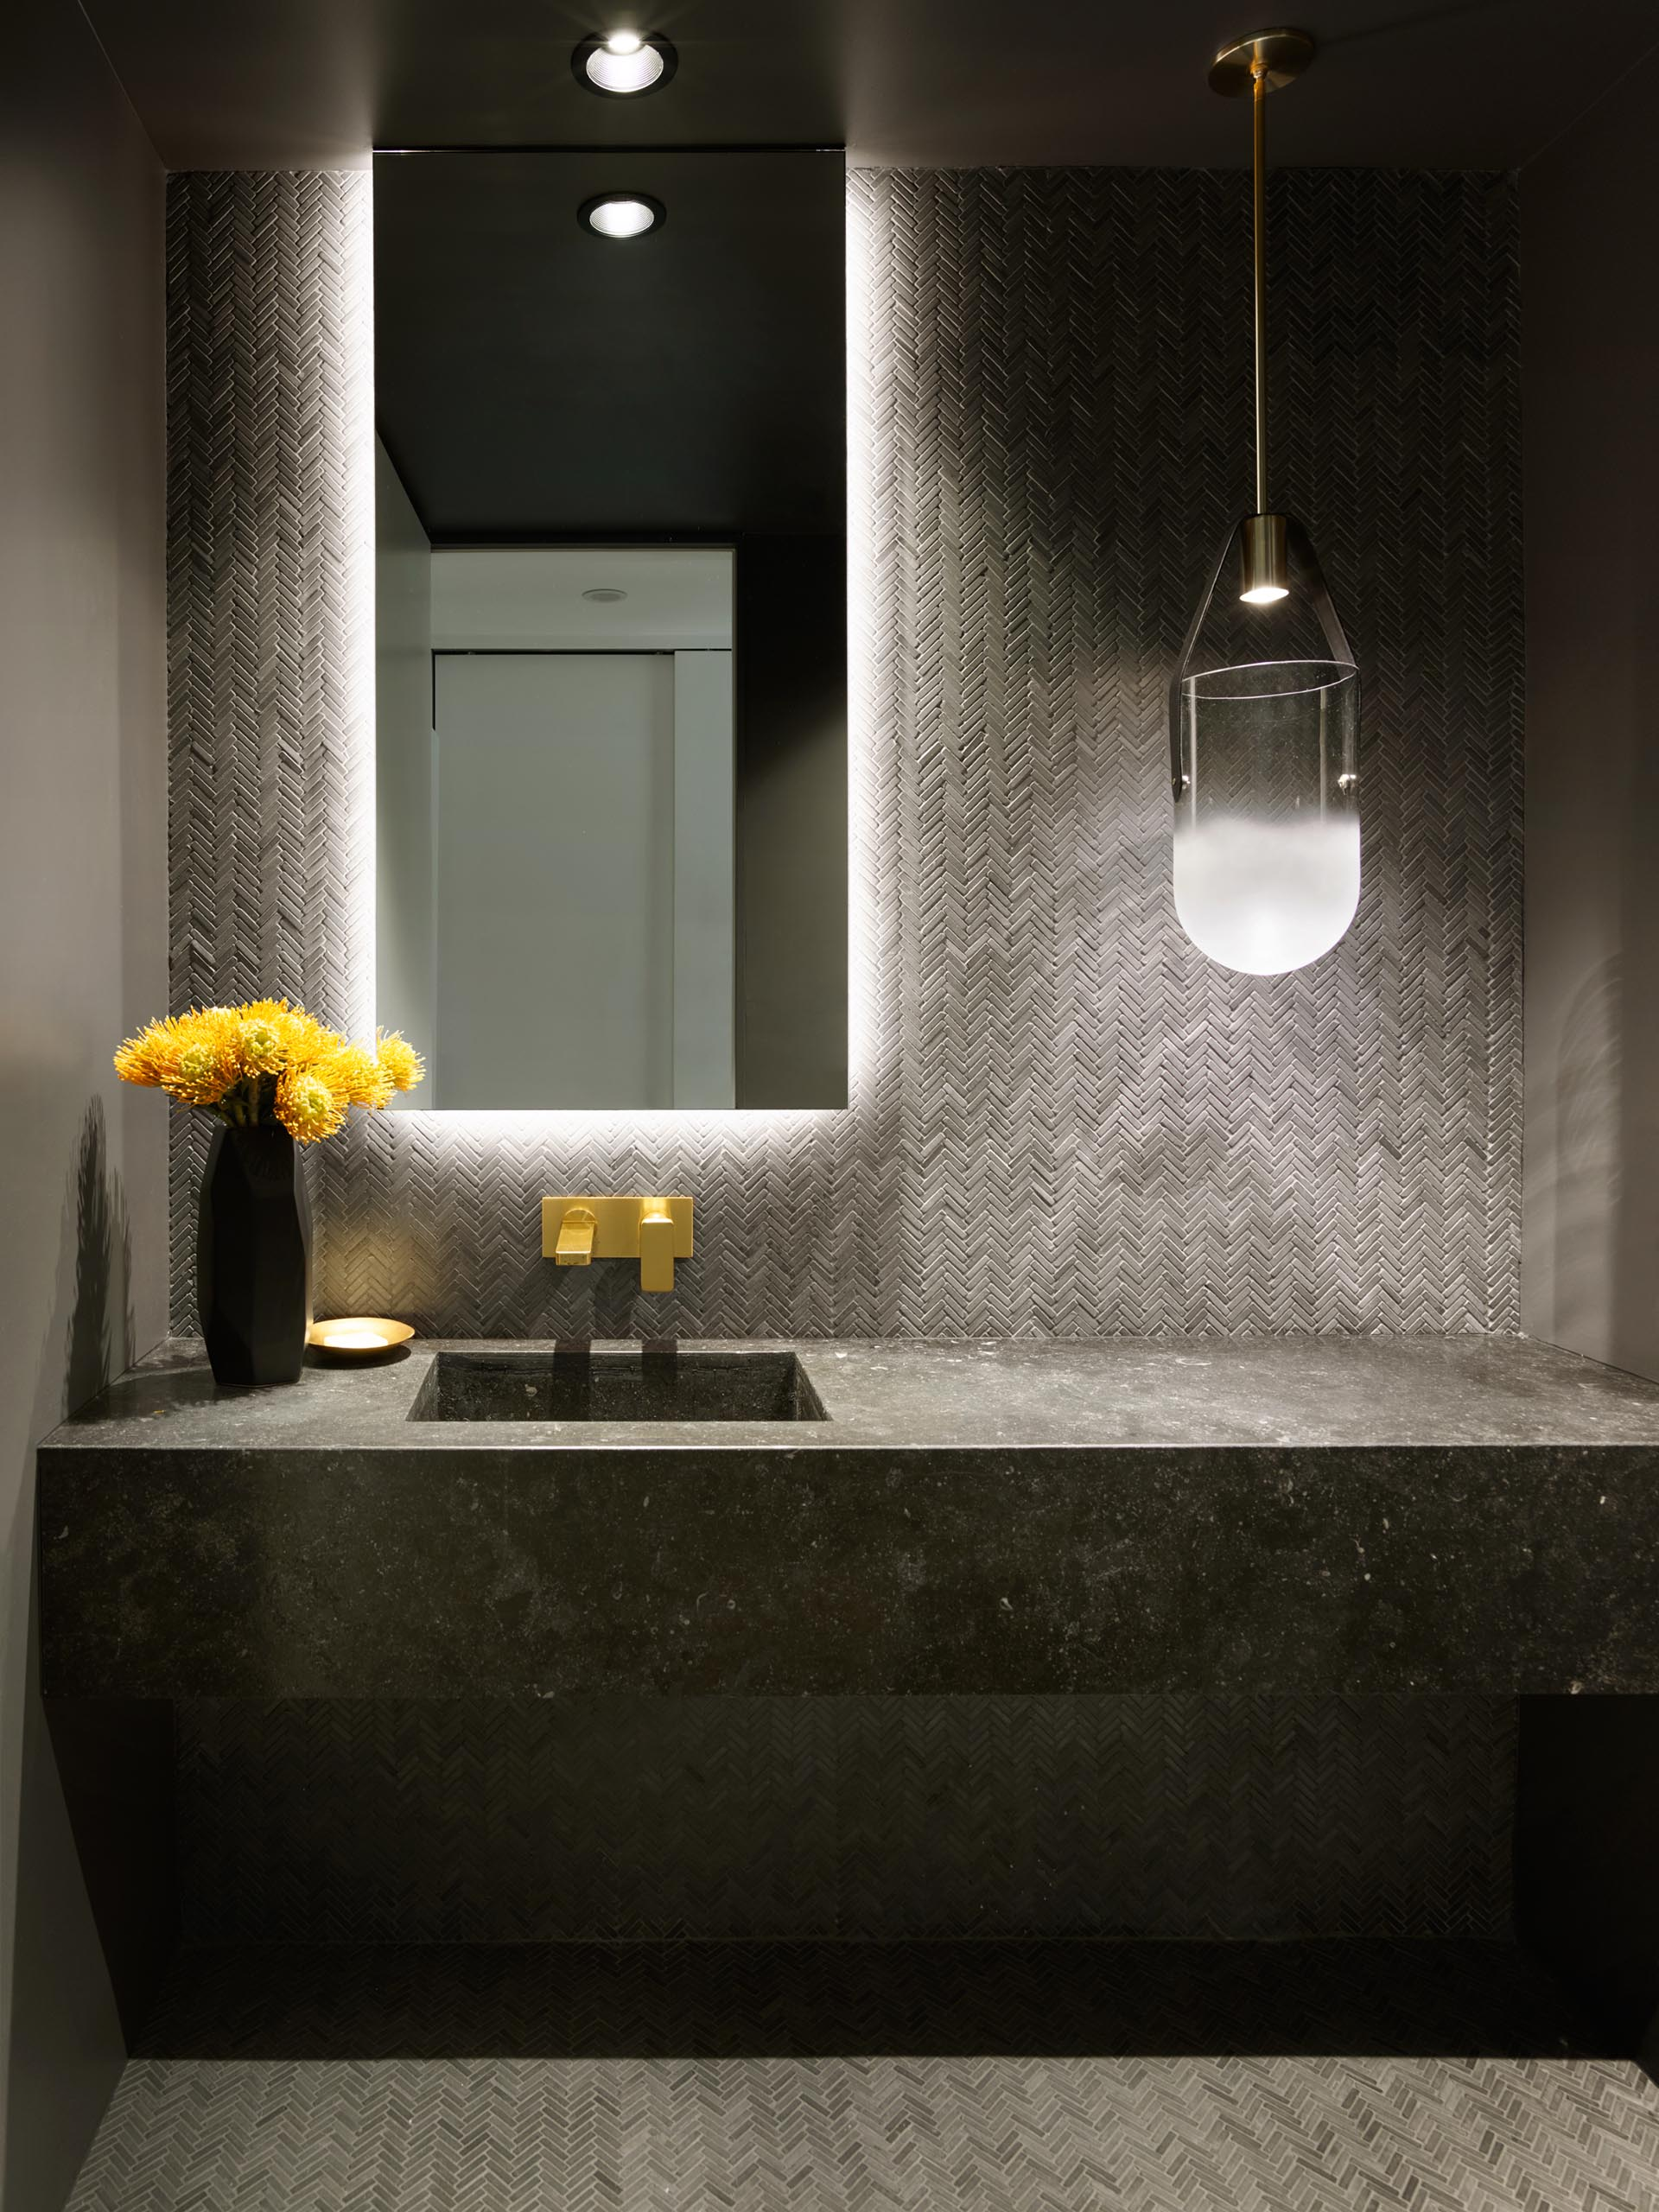 A modern powder room with dark grey tiles, a backlit mirror, and a glass pendant light.